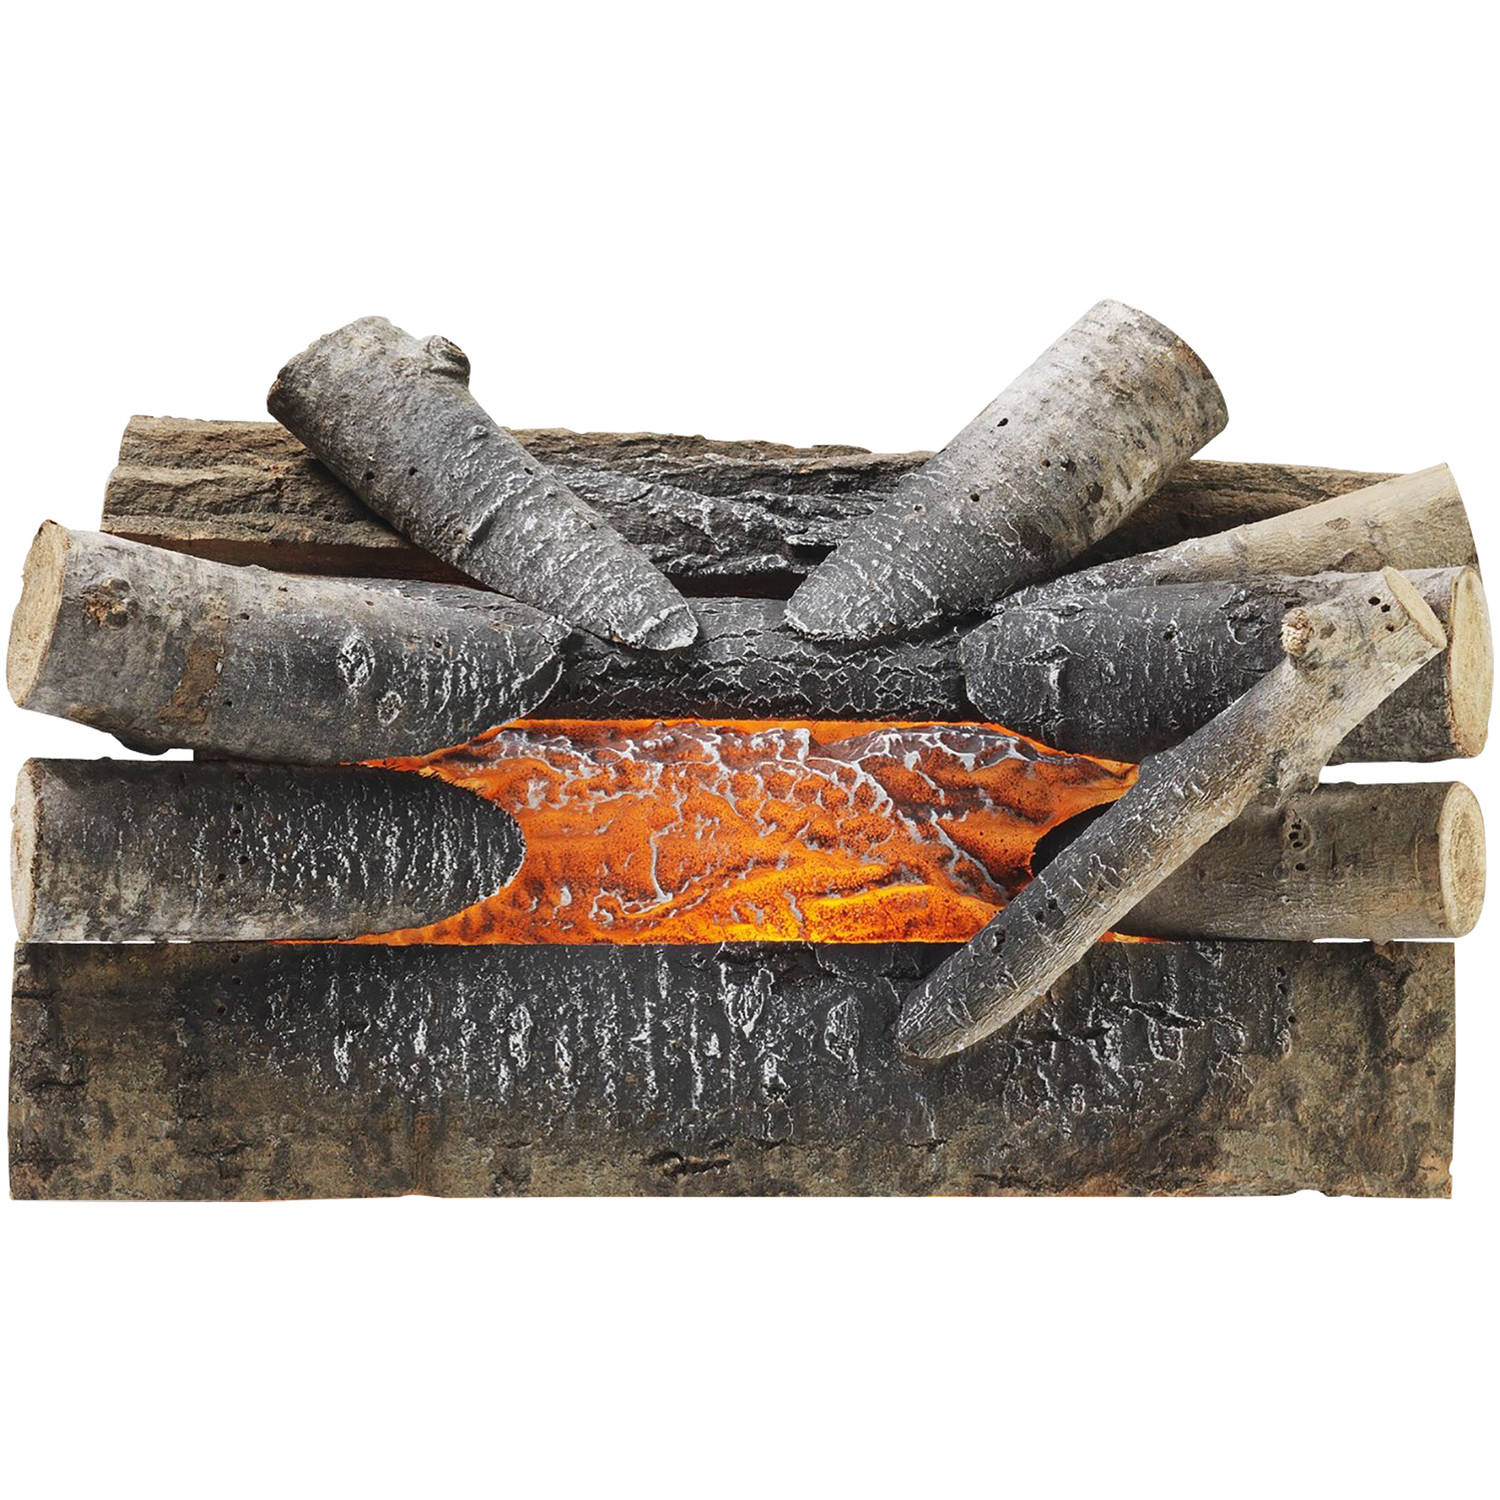 Pleasant Hearth L-20W Electric Crackling Log